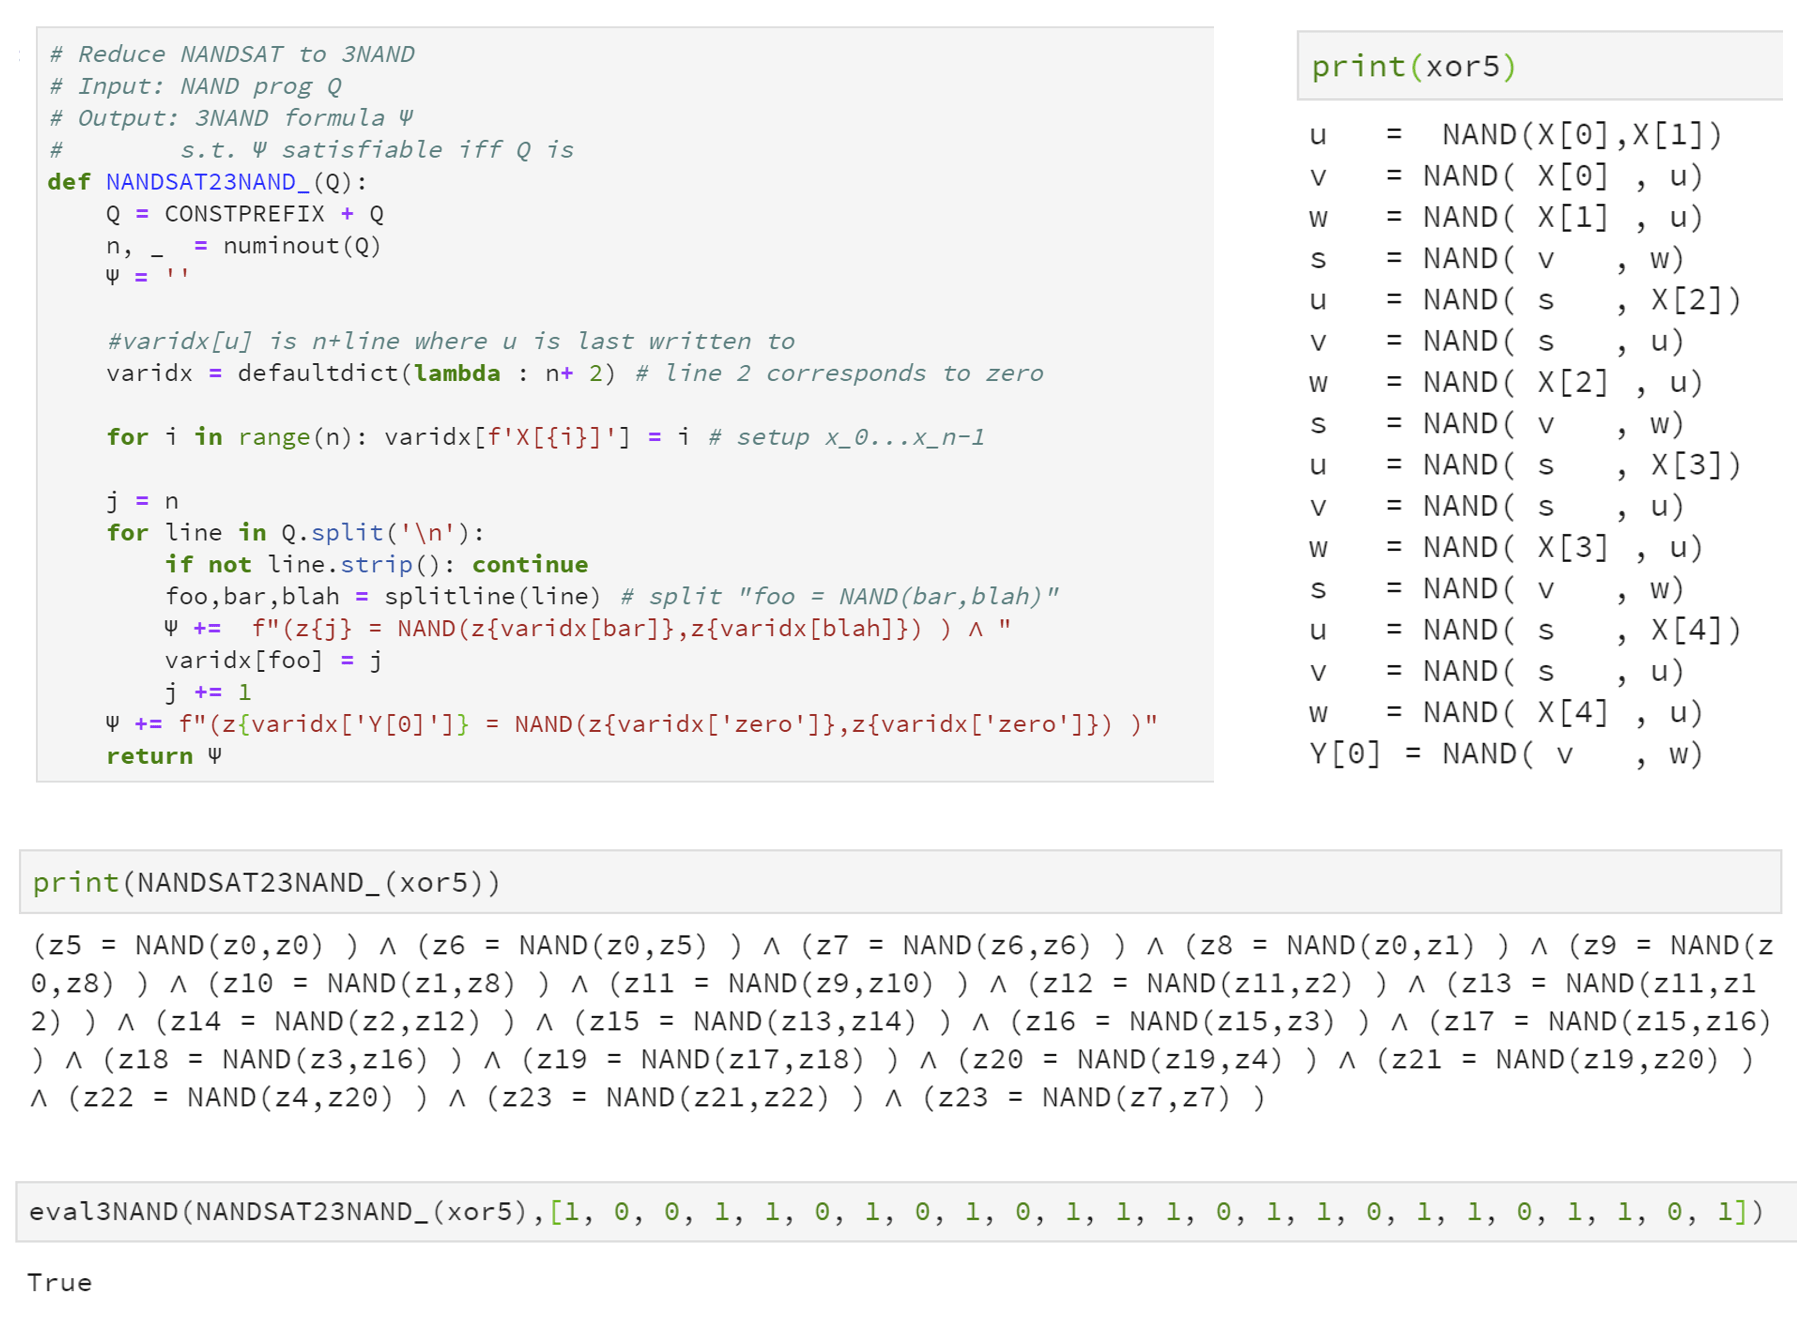 14.6: Python code to reduce an instance Q of \ensuremath{\mathit{NANDSAT}} to an instance \Psi of 3\ensuremath{\mathit{NAND}}. In the example above we transform the NAND-CIRC program xor5 which has 5 input variables and 16 lines, into a 3\ensuremath{\mathit{NAND}} formula \Psi that has 24 variables and 20 clauses. Since xor5 outputs 1 on the input 1,0,0,1,1, there exists an assignment z \in \{0,1\}^{24} to \Psi such that (z_0,z_1,z_2,z_3,z_4)=(1,0,0,1,1) and \Psi evaluates to true on z.